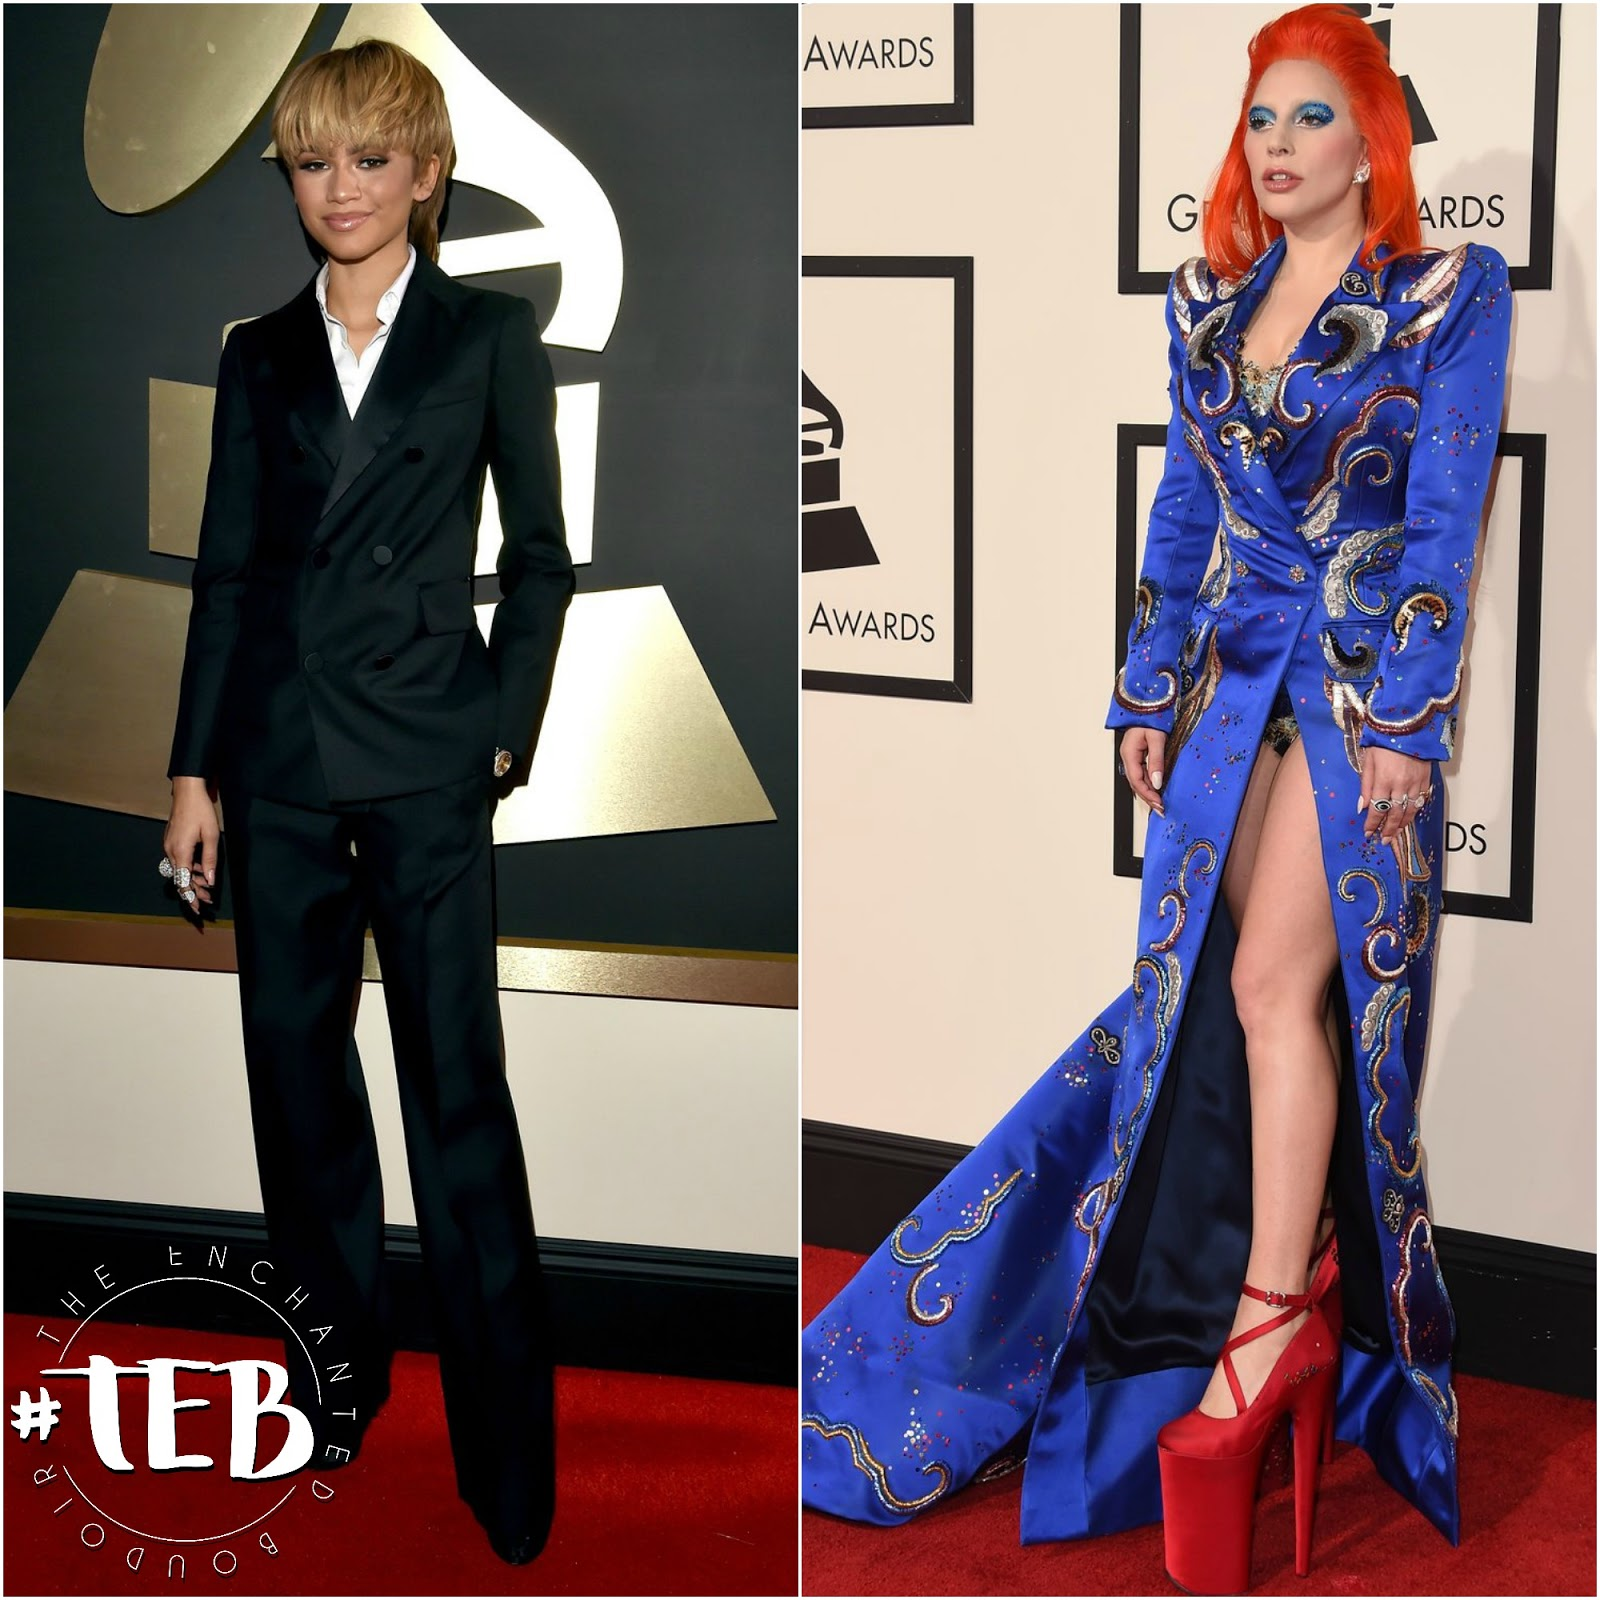 GRAMMY AWARDS 2016 red carpet